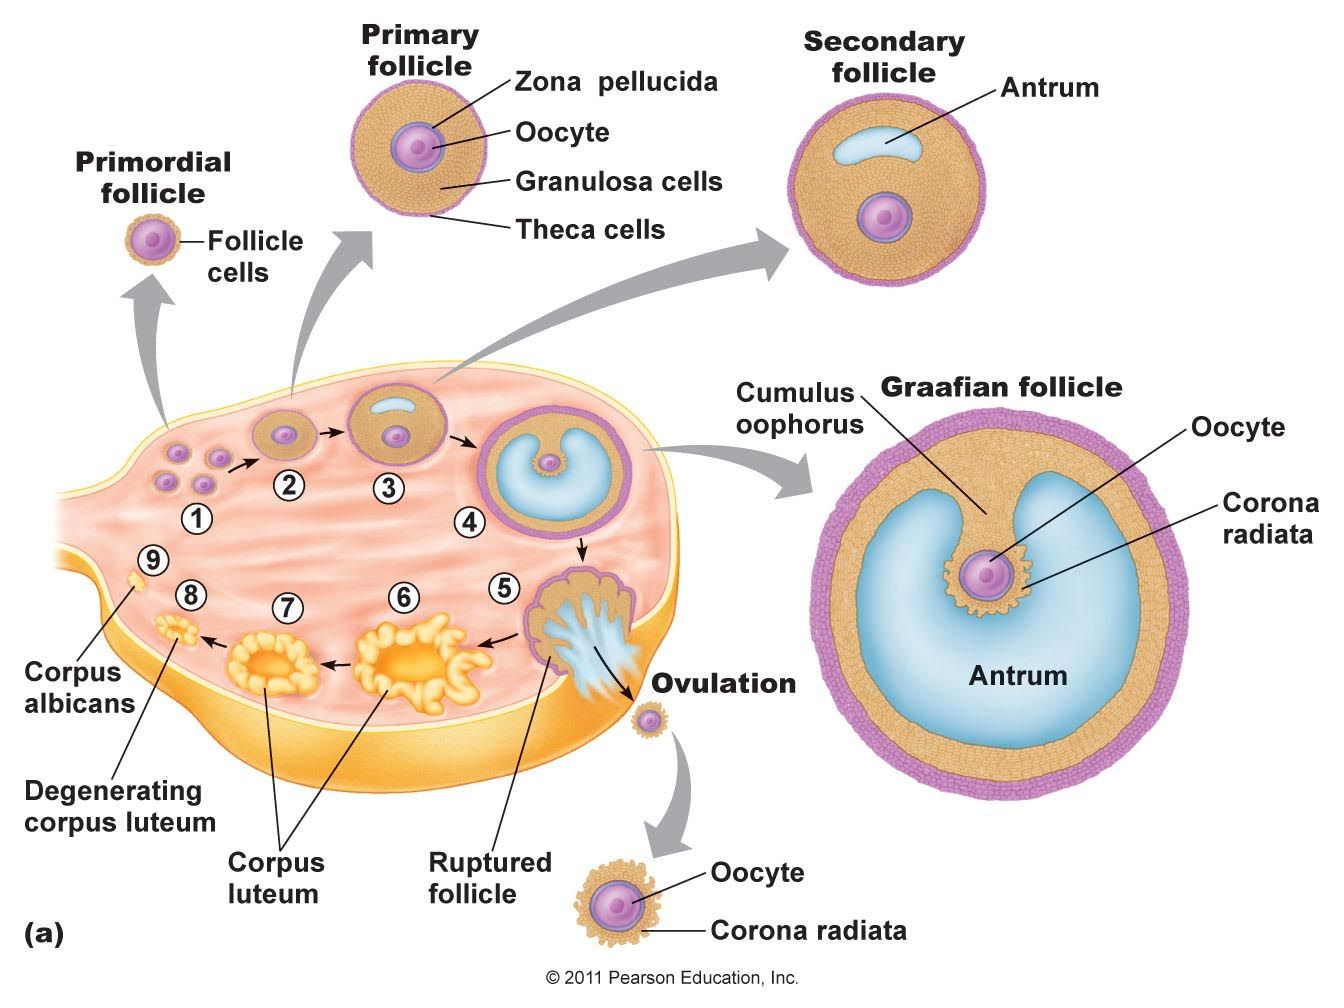 medium resolution of structure of ovary in female labeled structure of ovary human anatomy female reproductive